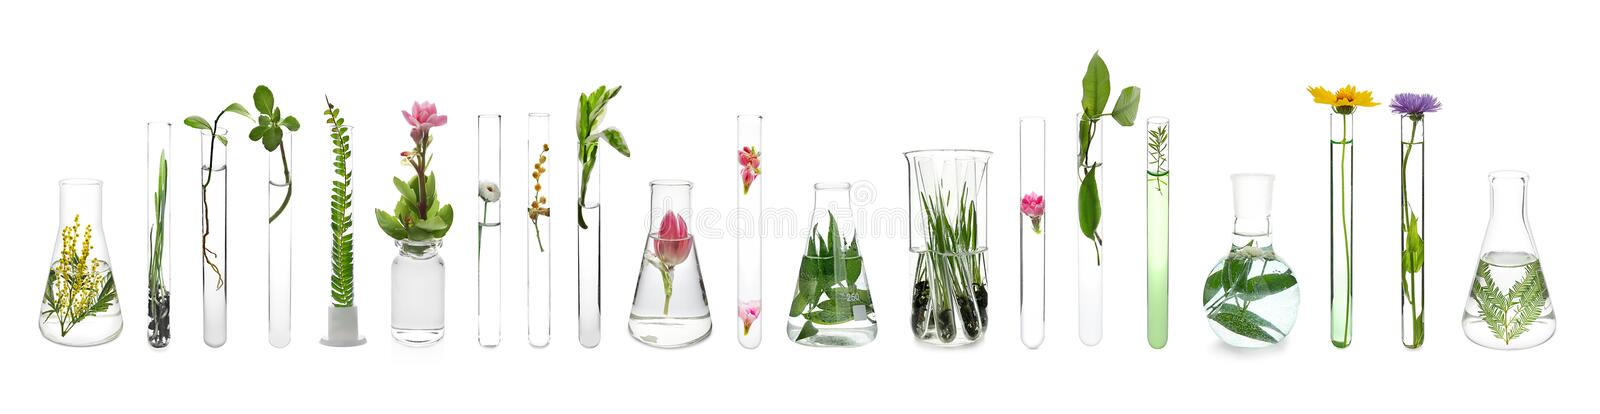 Laboratory glassware with plants on white background royalty free stock image